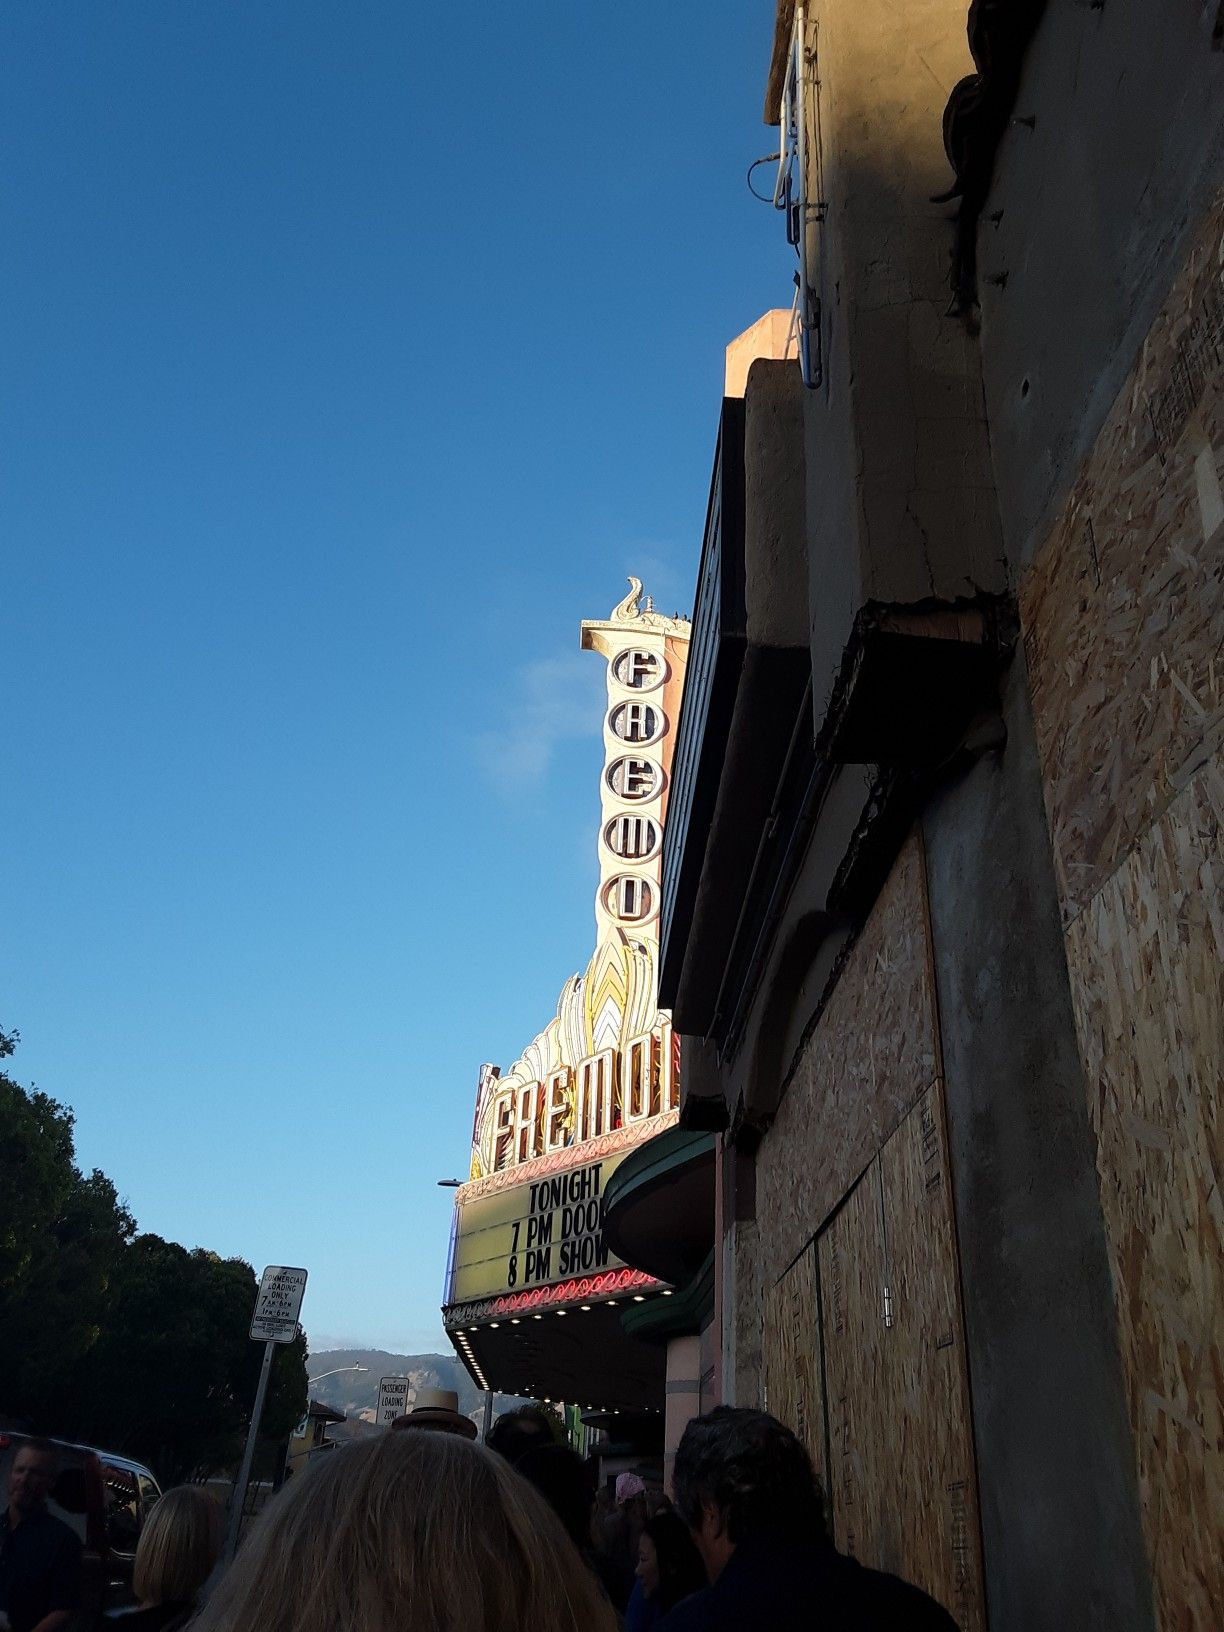 Line outside of fremont theater in downtown san luis